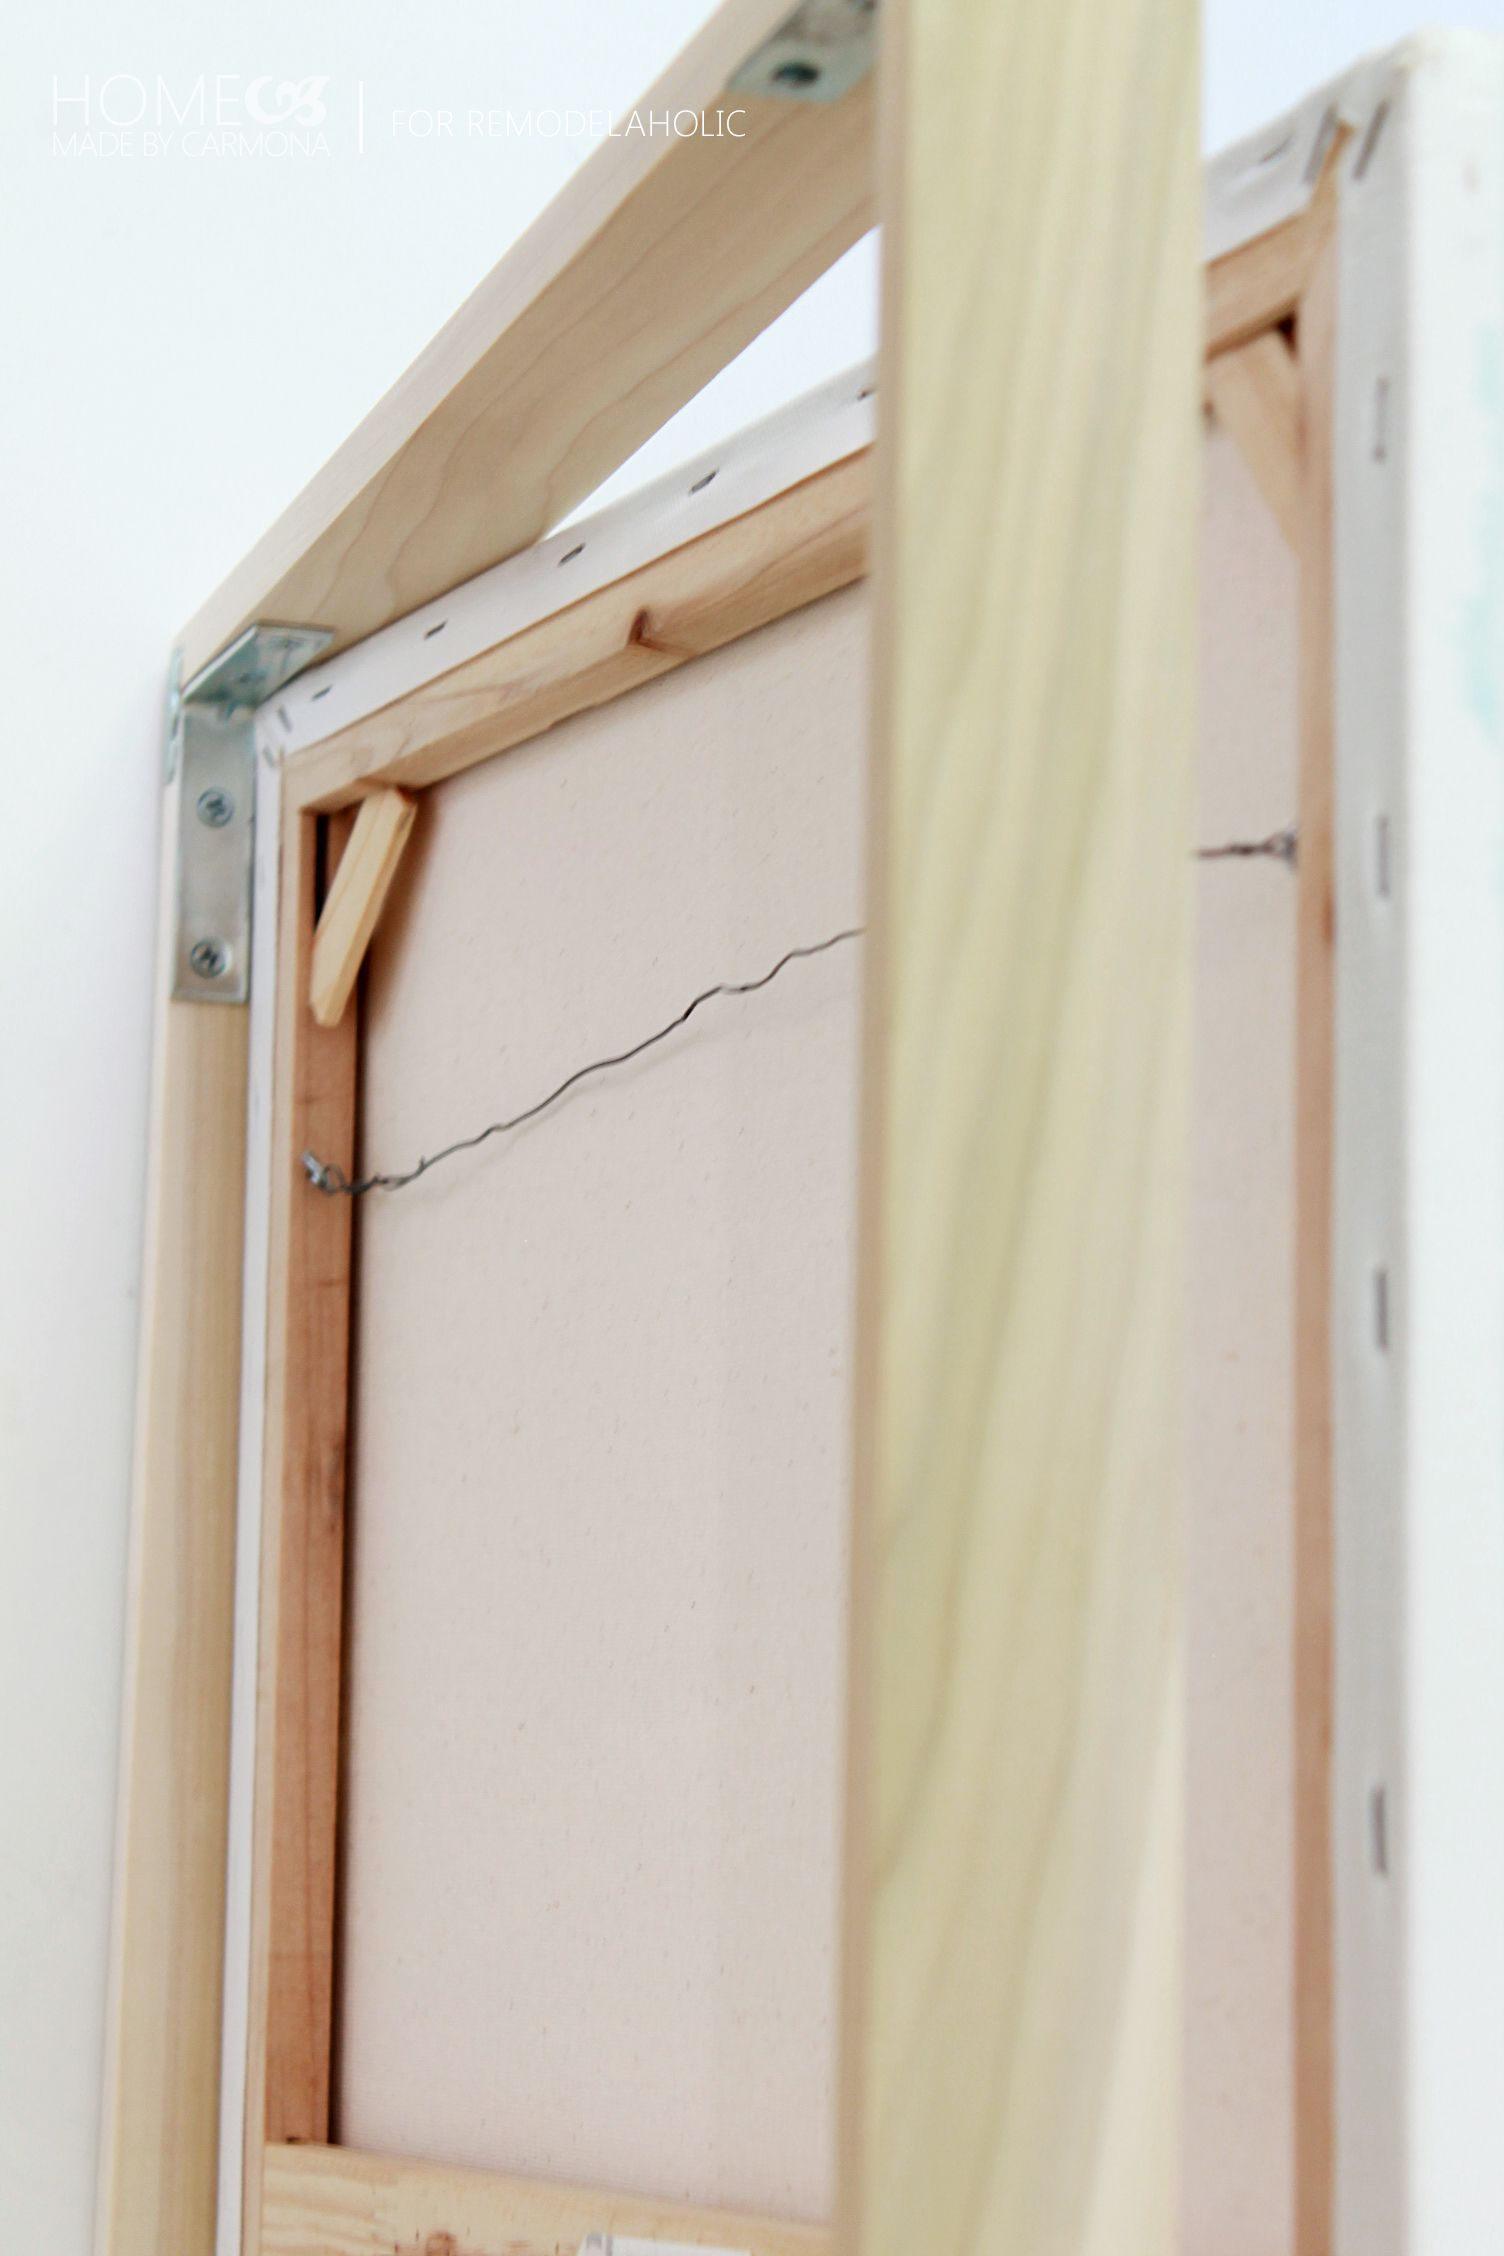 Tutorial: Chic Floating Frame for a Canvas | Marcos, Pinturas y Cuadro